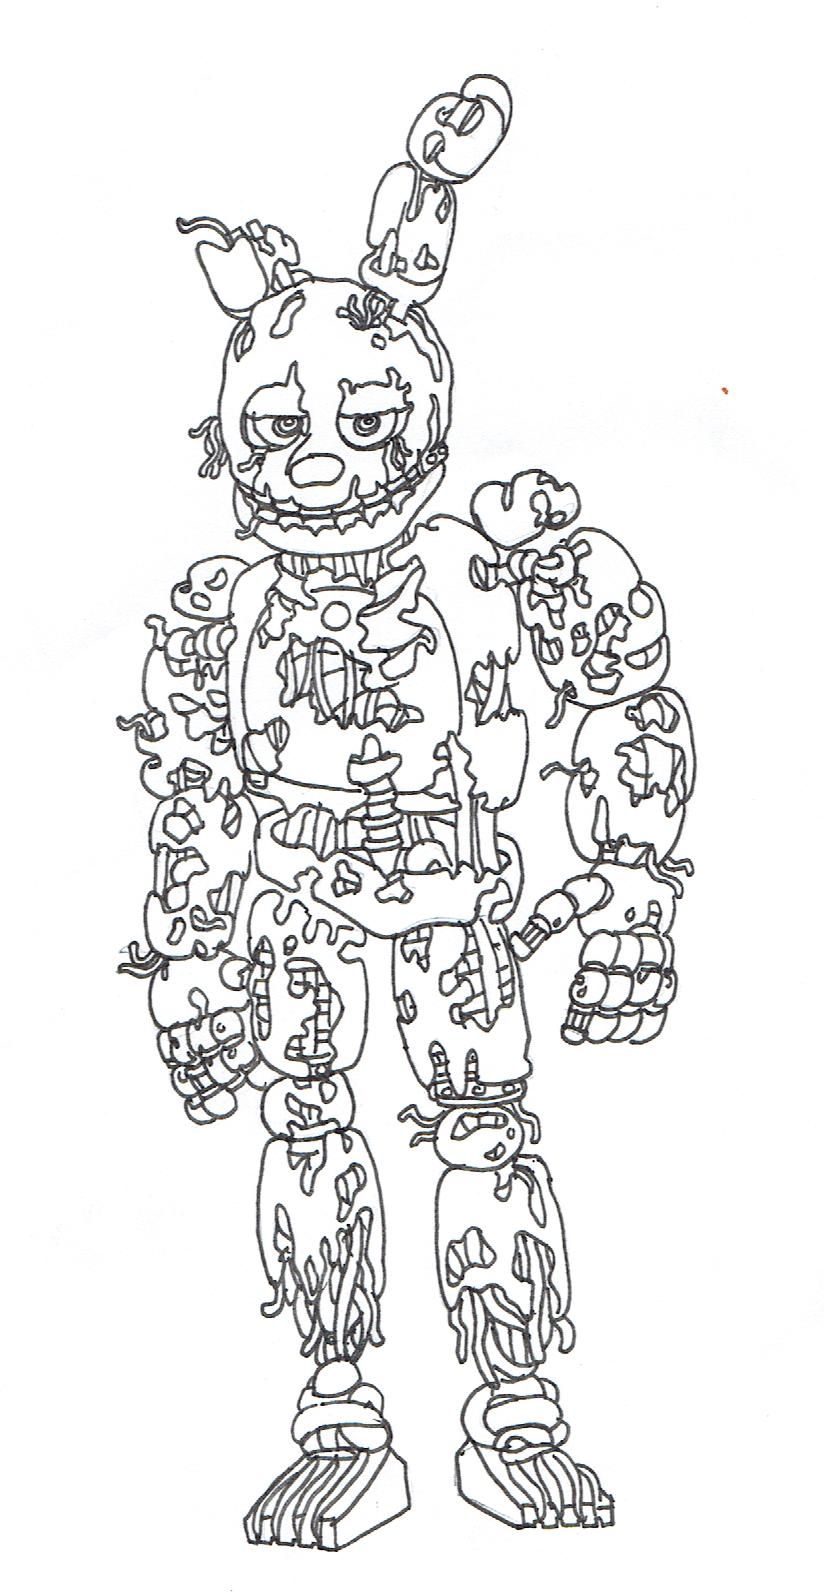 Five Nights At Freddys Coloring Pages Springtrap Free Coloring Sheets Fnaf Coloring Pages Minion Coloring Pages Monster Coloring Pages